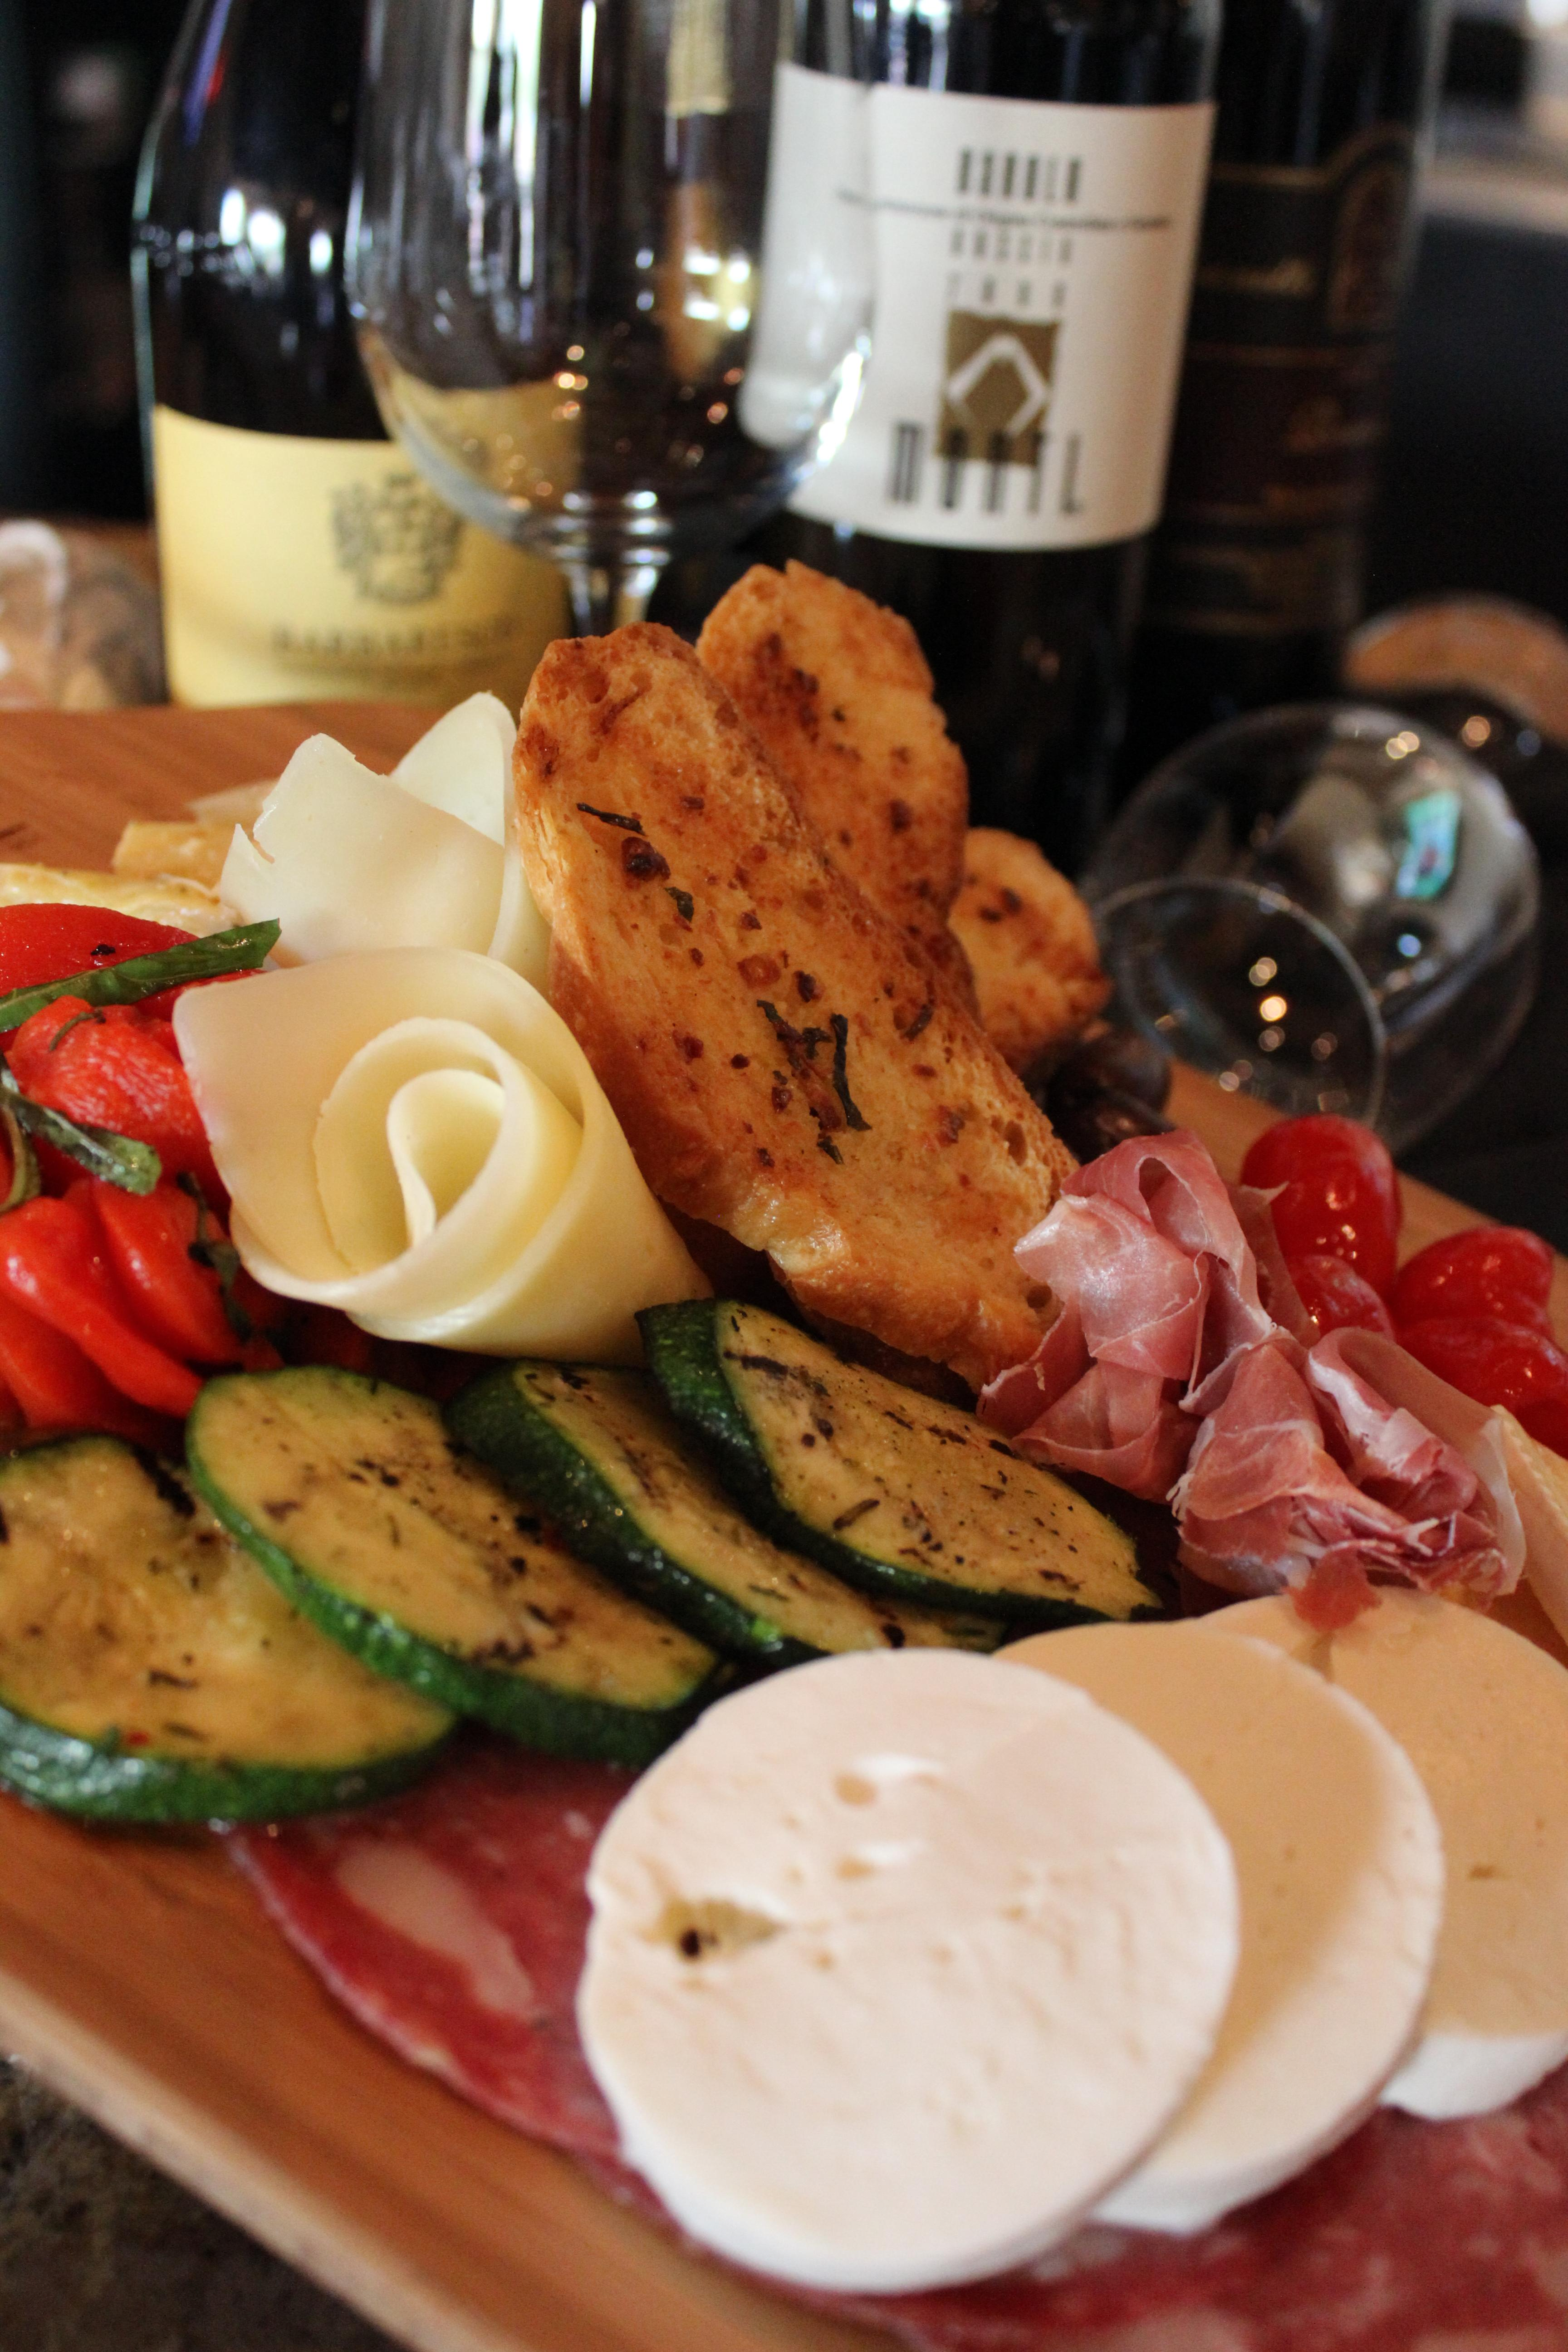 House Cured Meats, Cheeses, and Vegetables at Zona 78